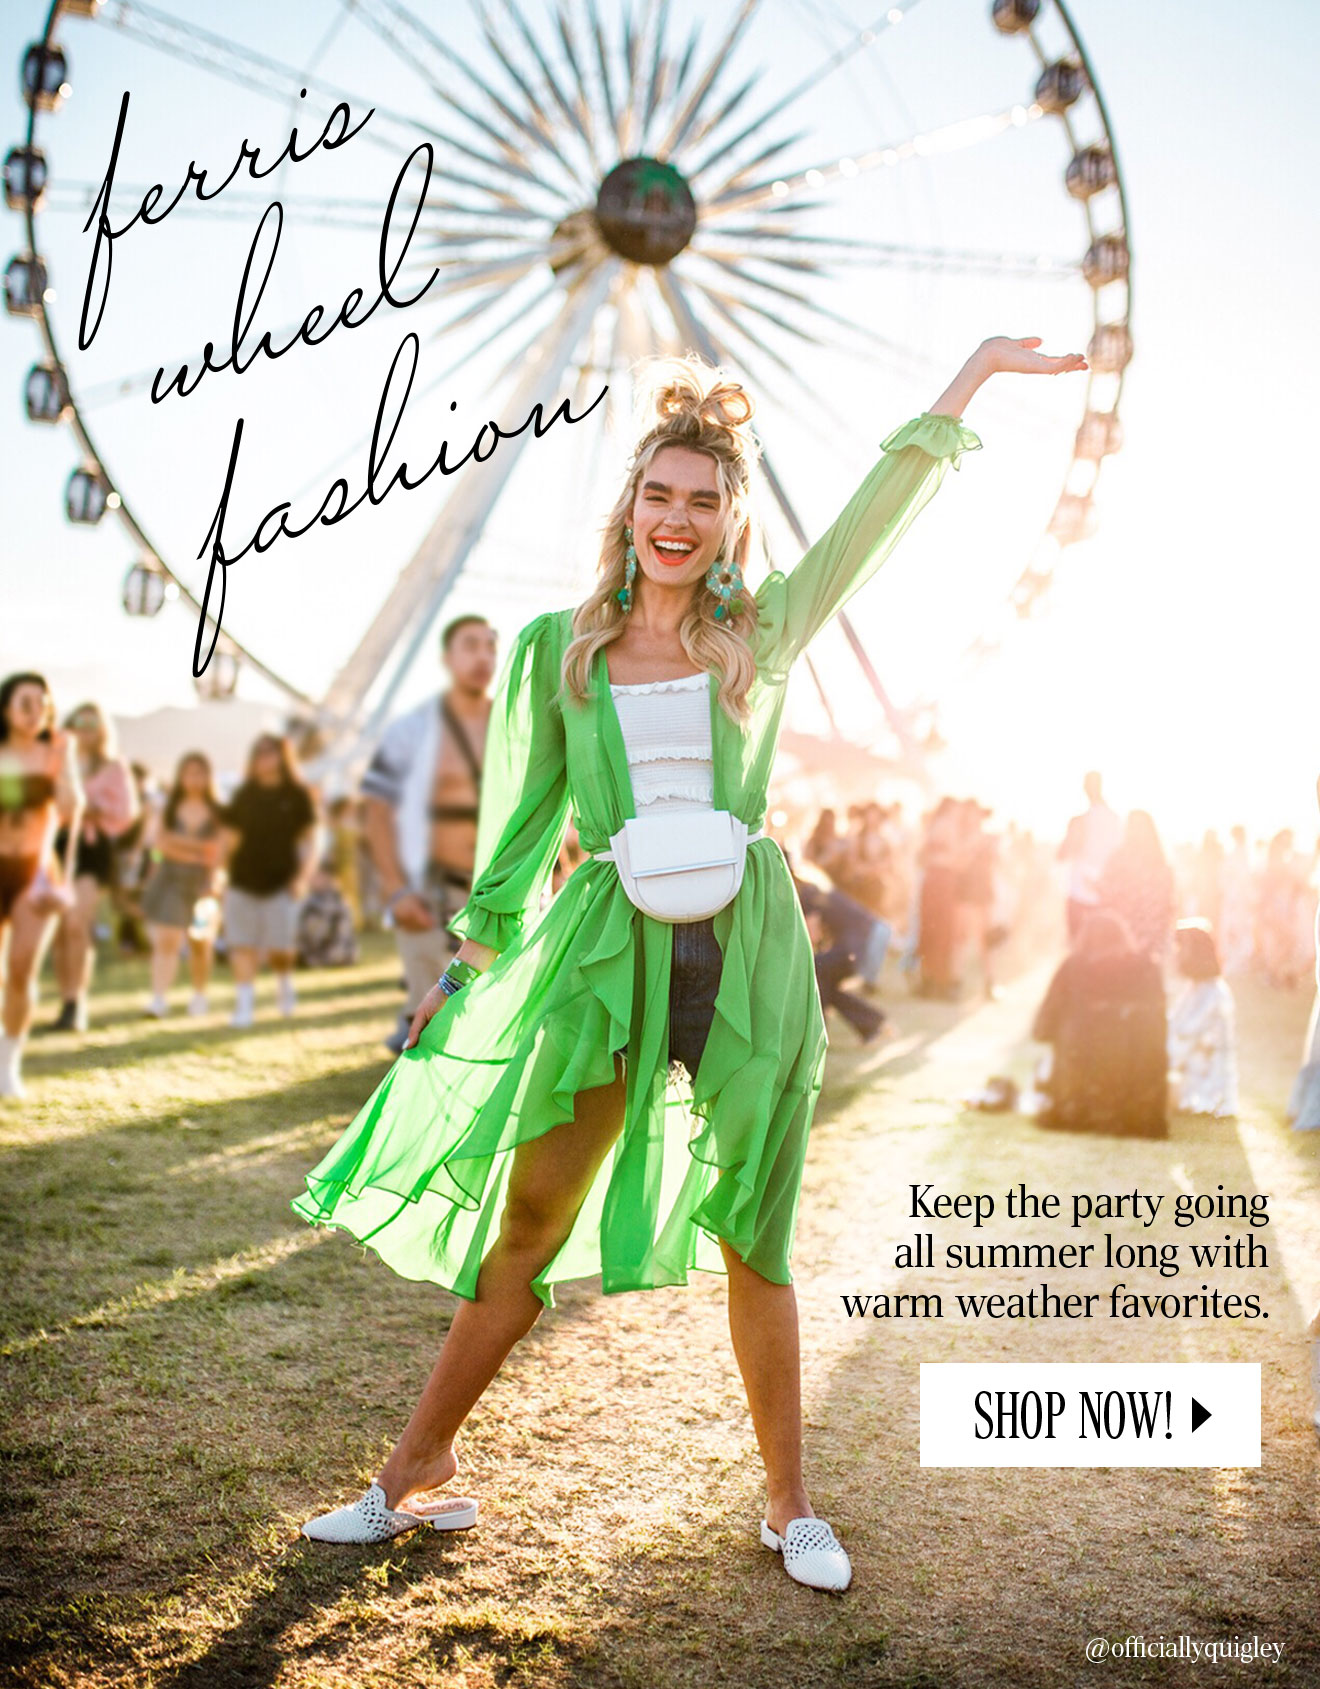 Keep the party going all summer long with warm weather favorites. Shop Now